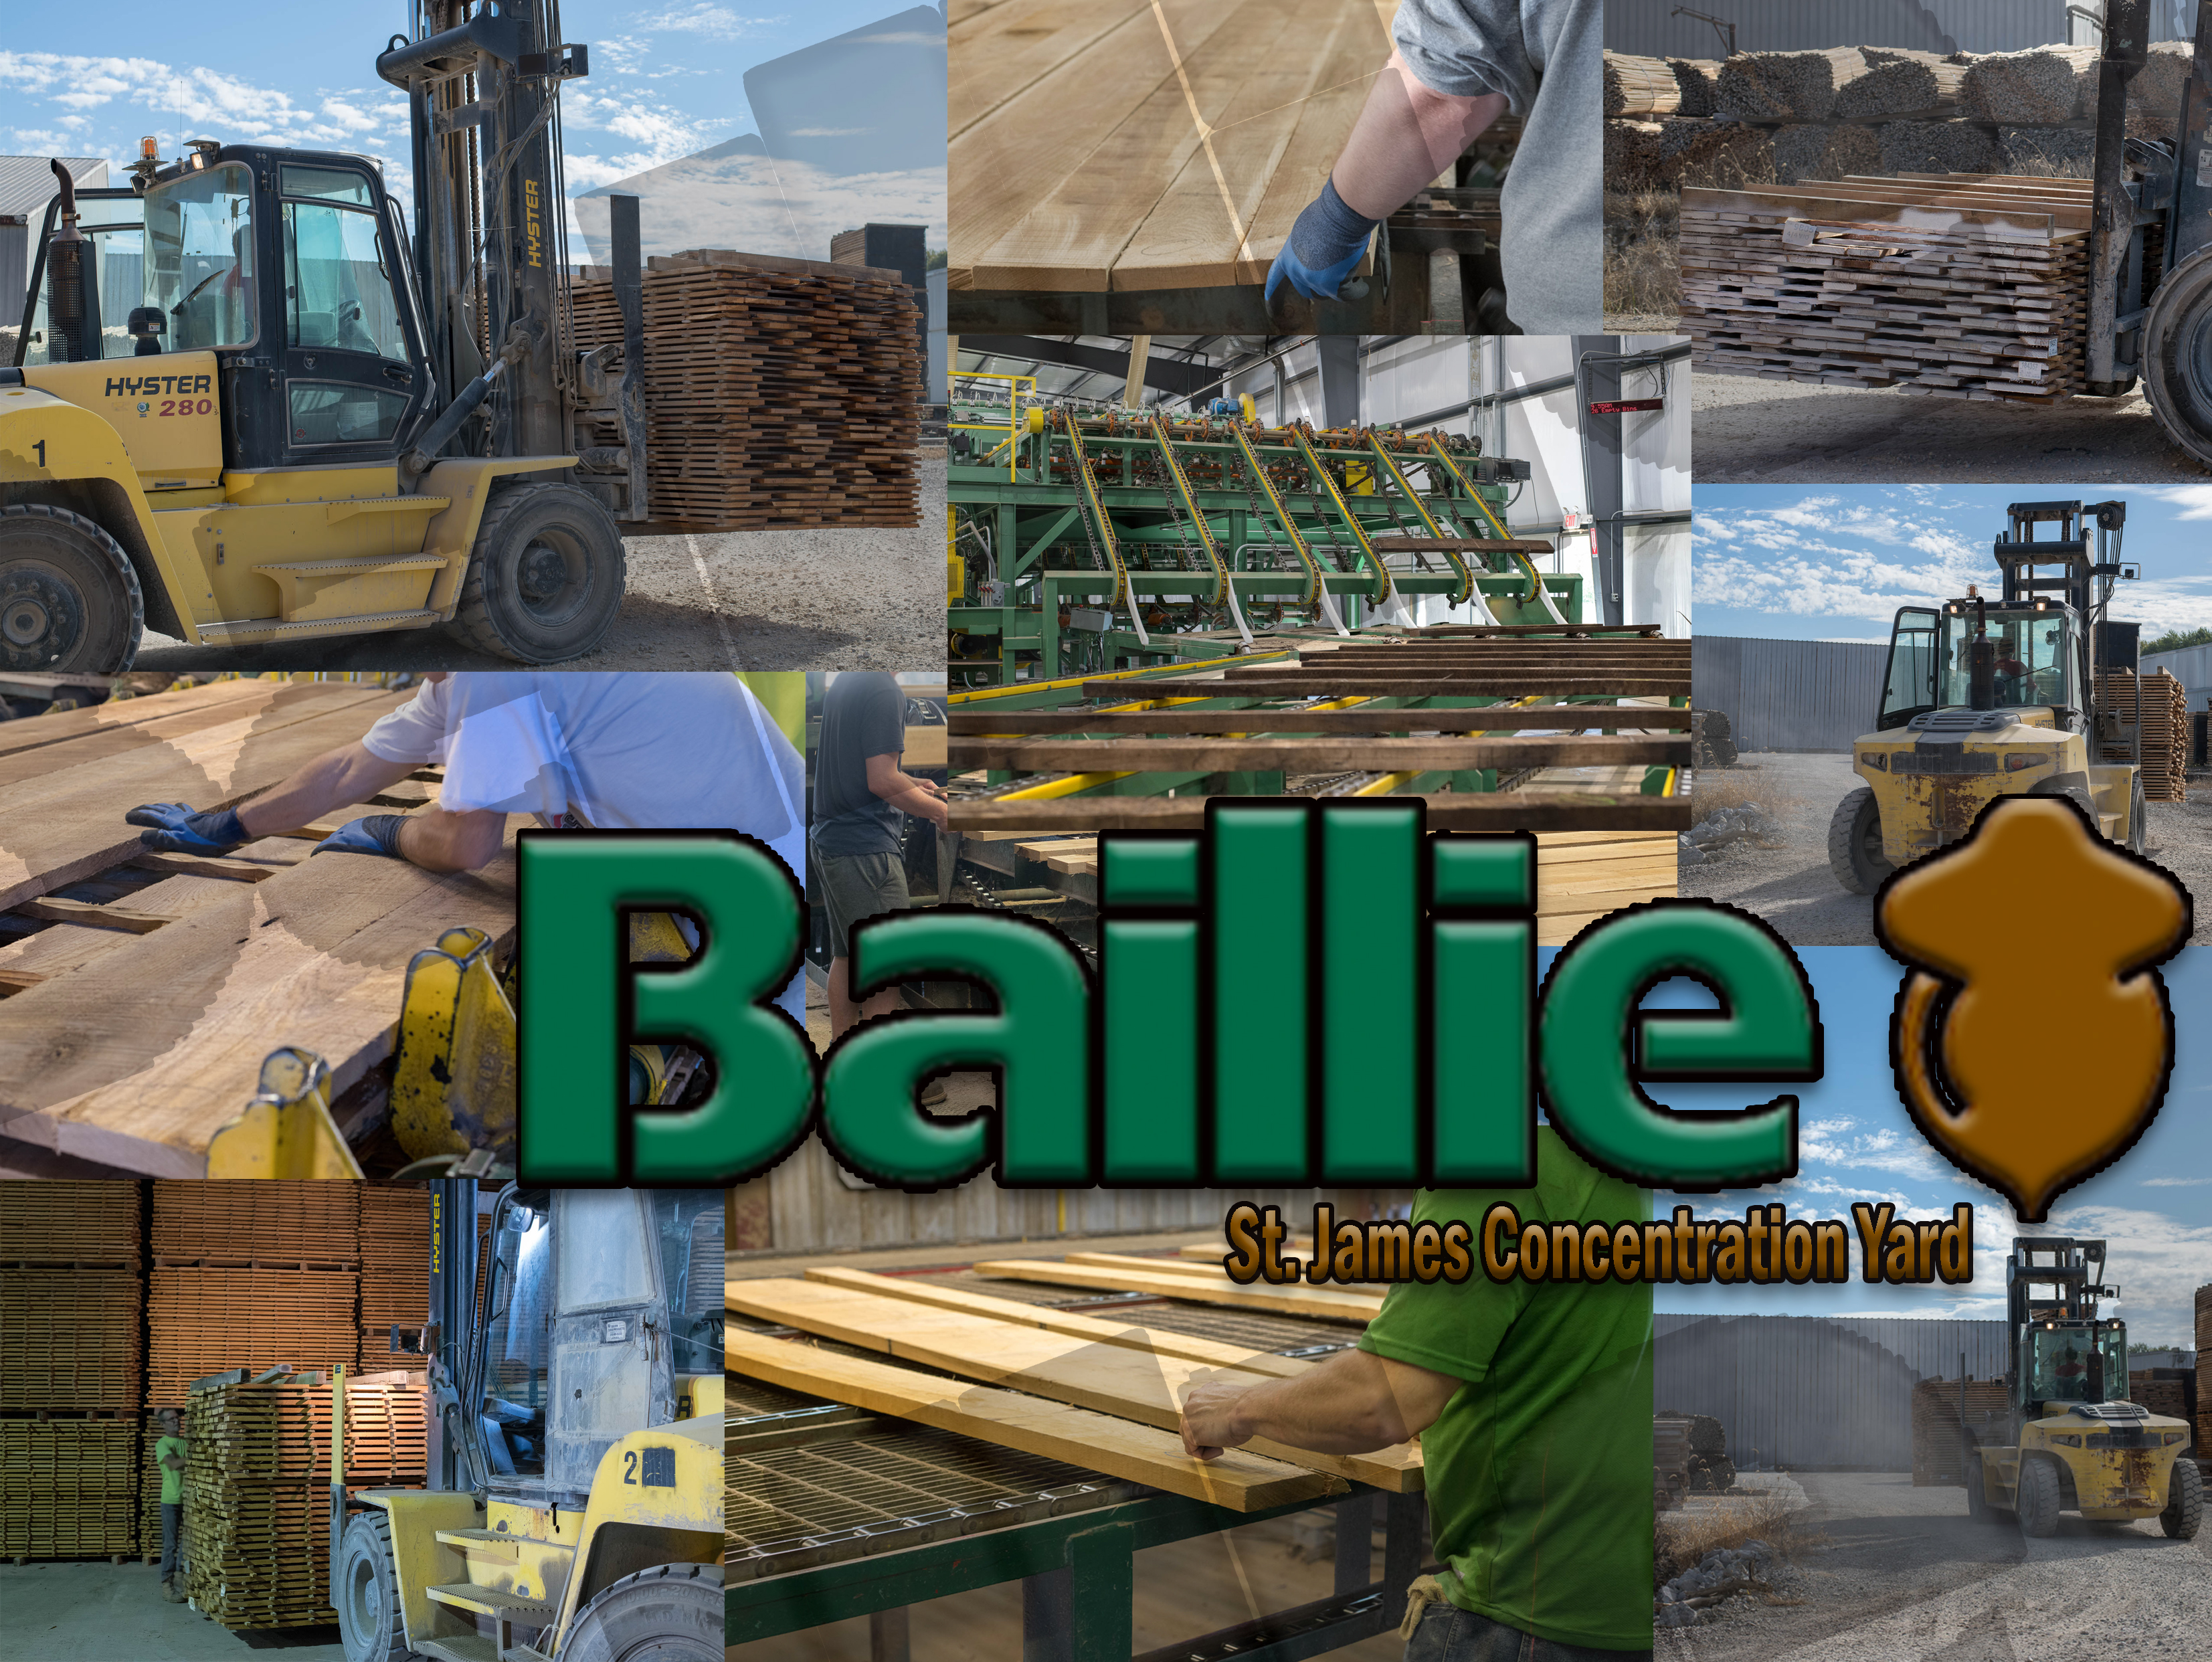 baillie collage